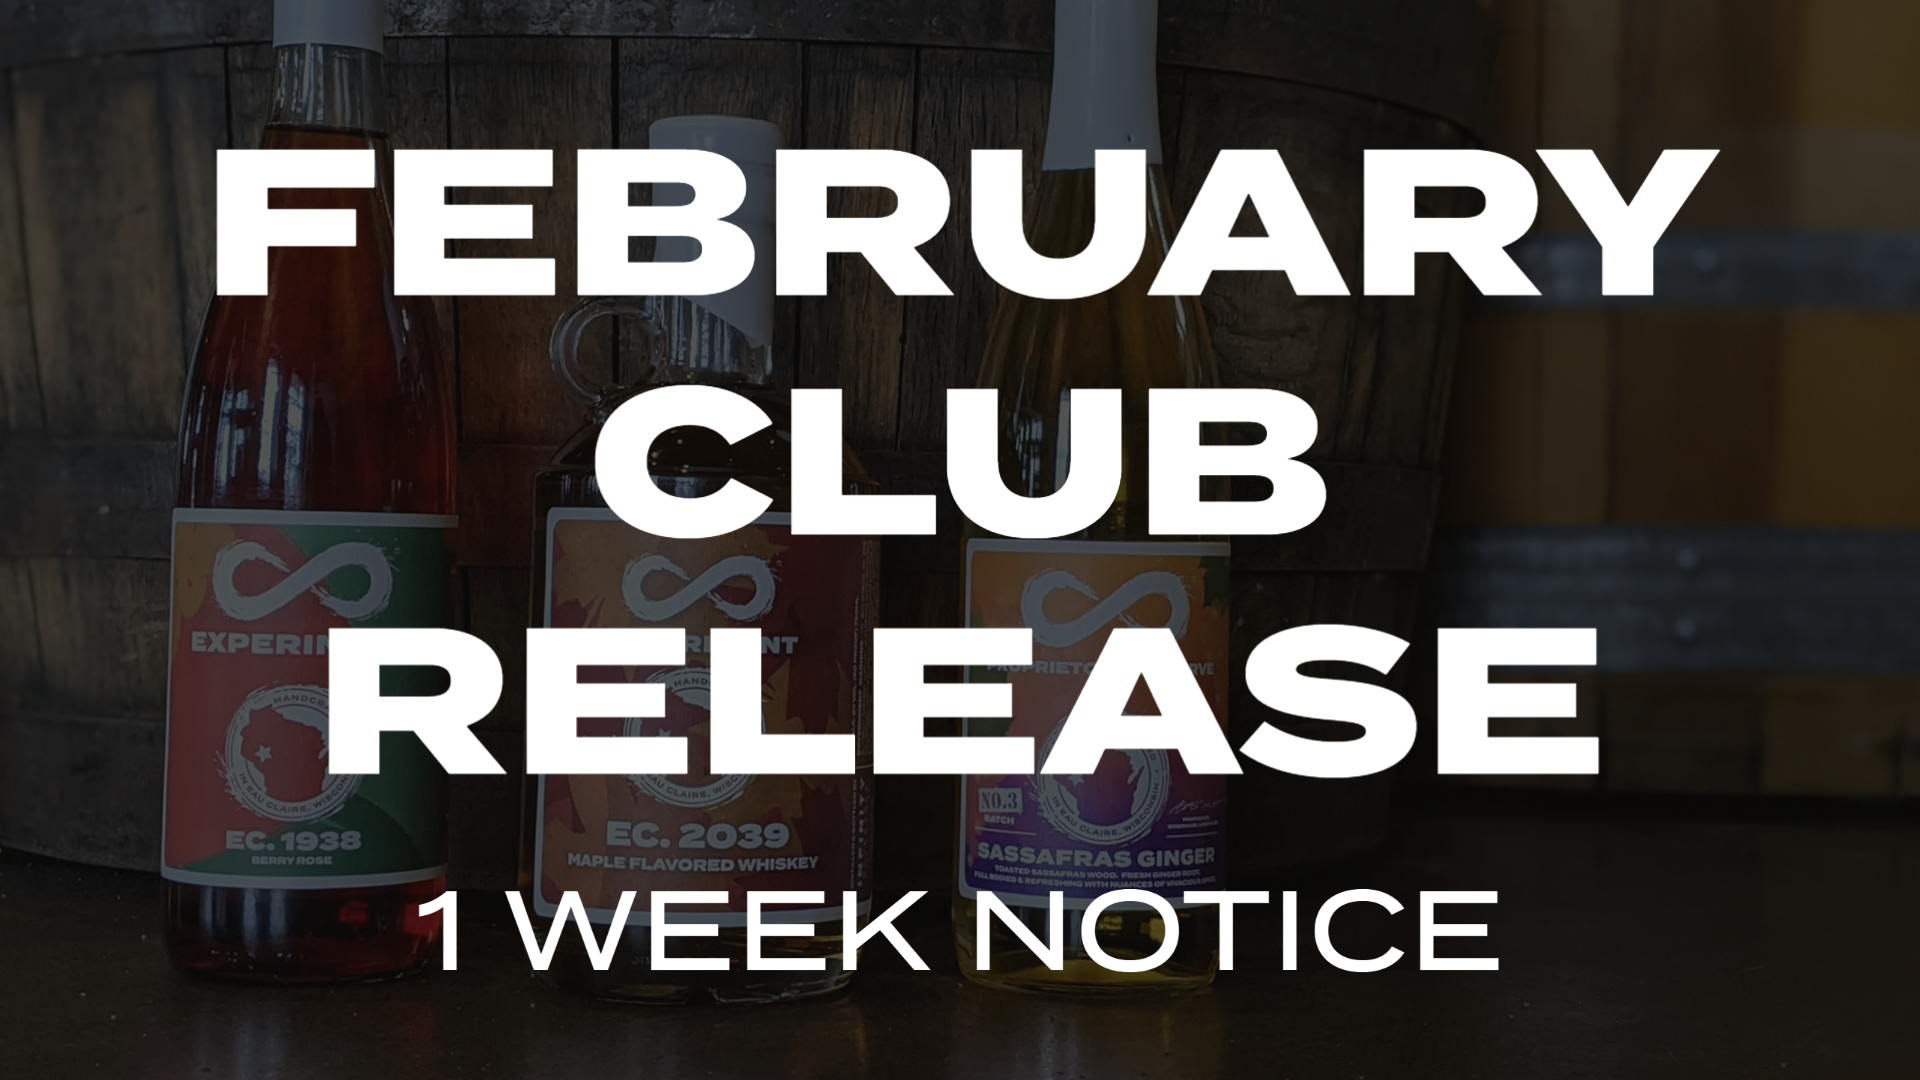 February Club Release 1 Week Notice